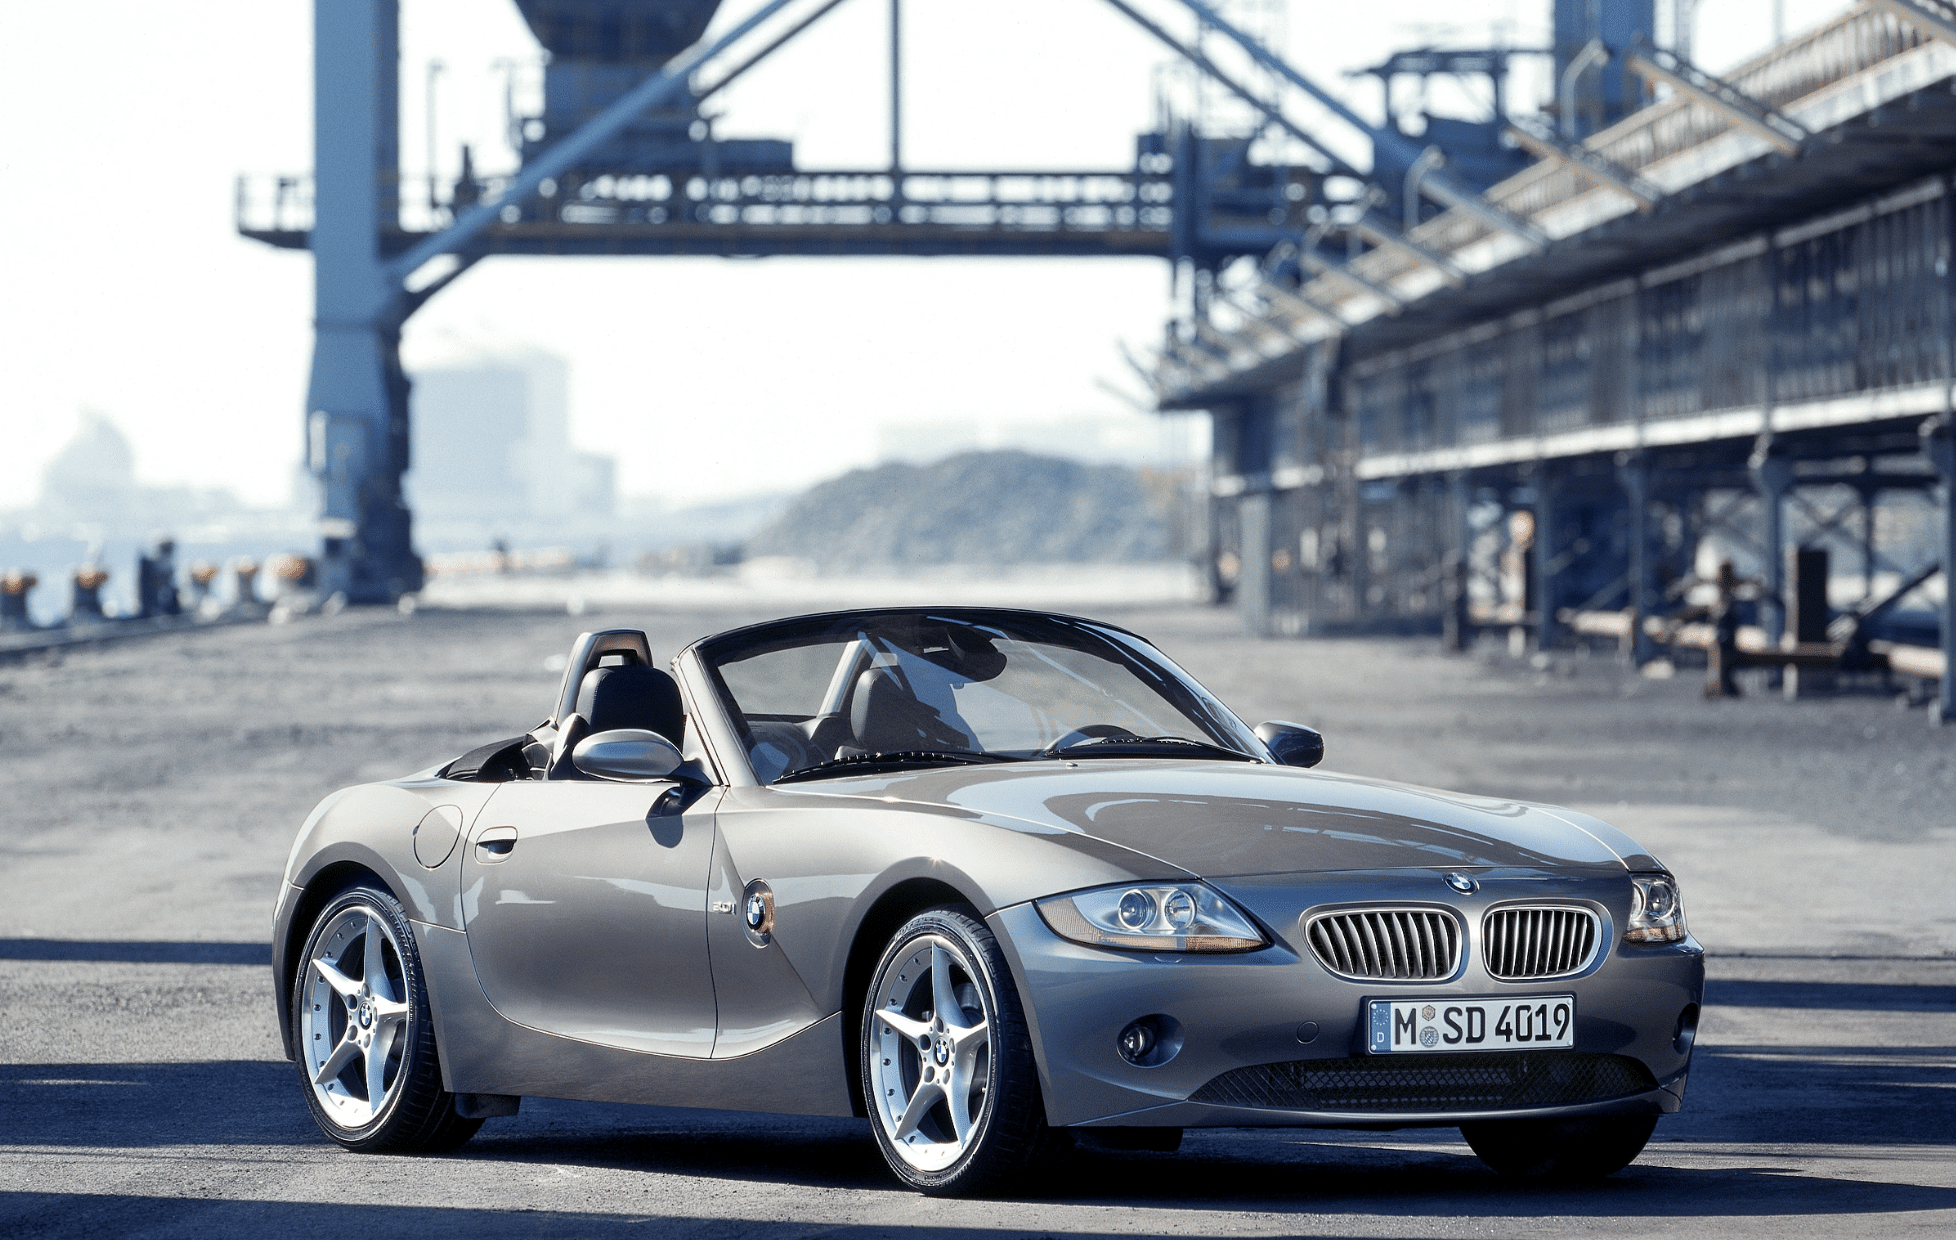 The Bmw Z4 Fancy A Smart German Roadster Look No Further